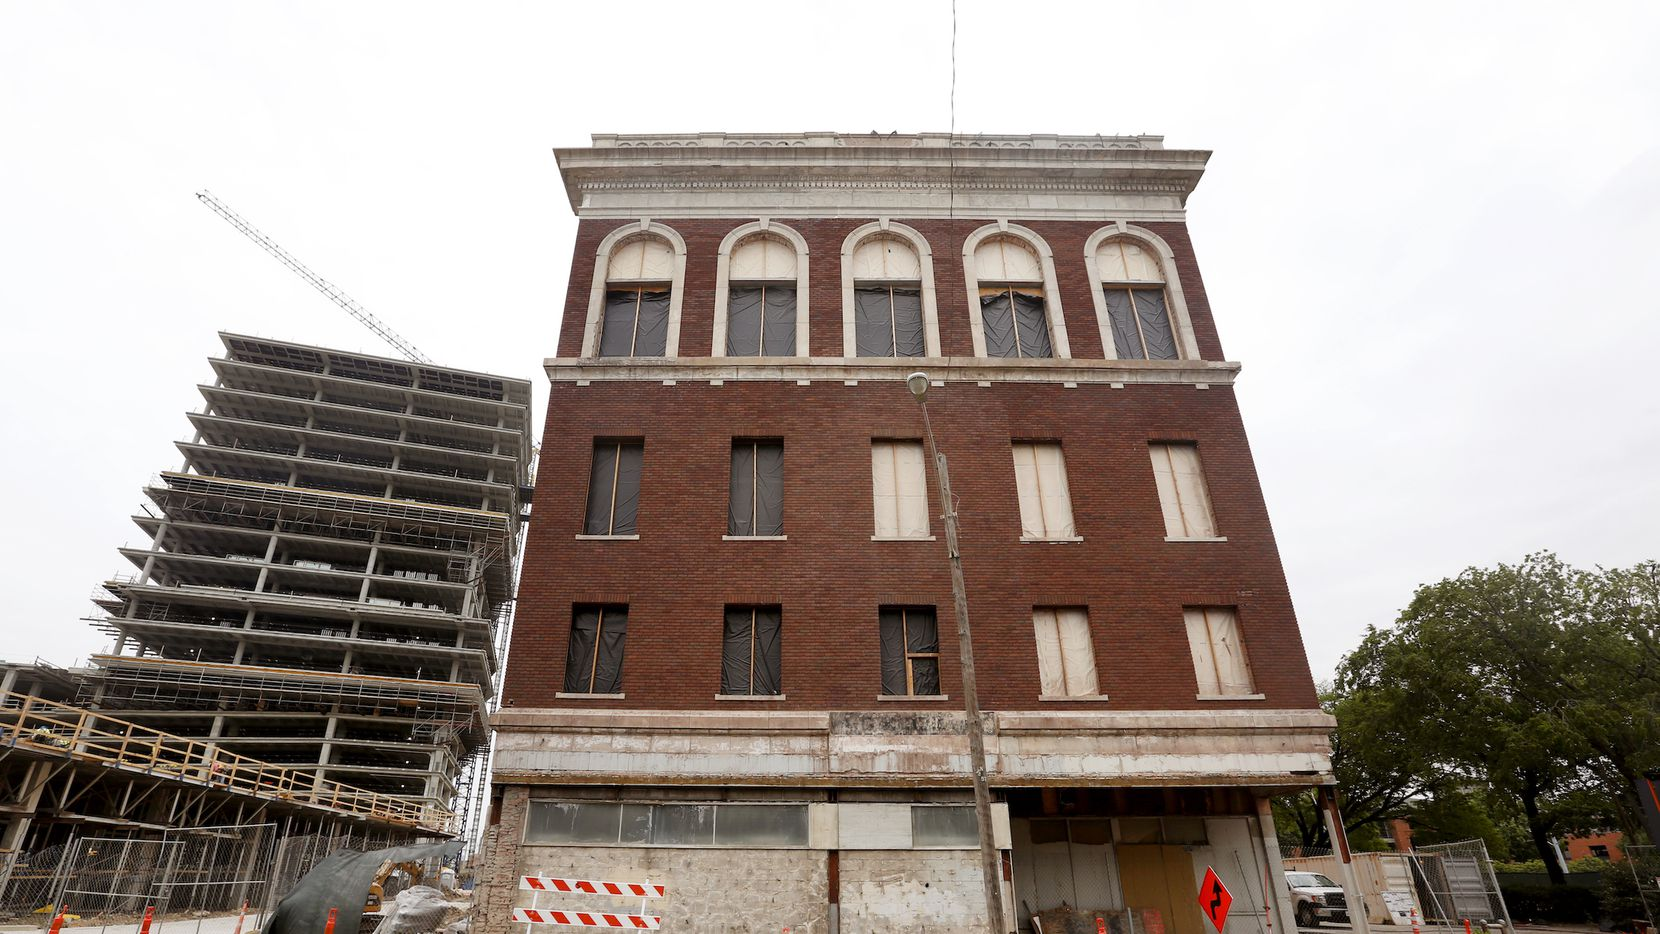 The landmark Knights of Pythias building on Elm Street will reopen in 2020 as a Kimpton Hotel.